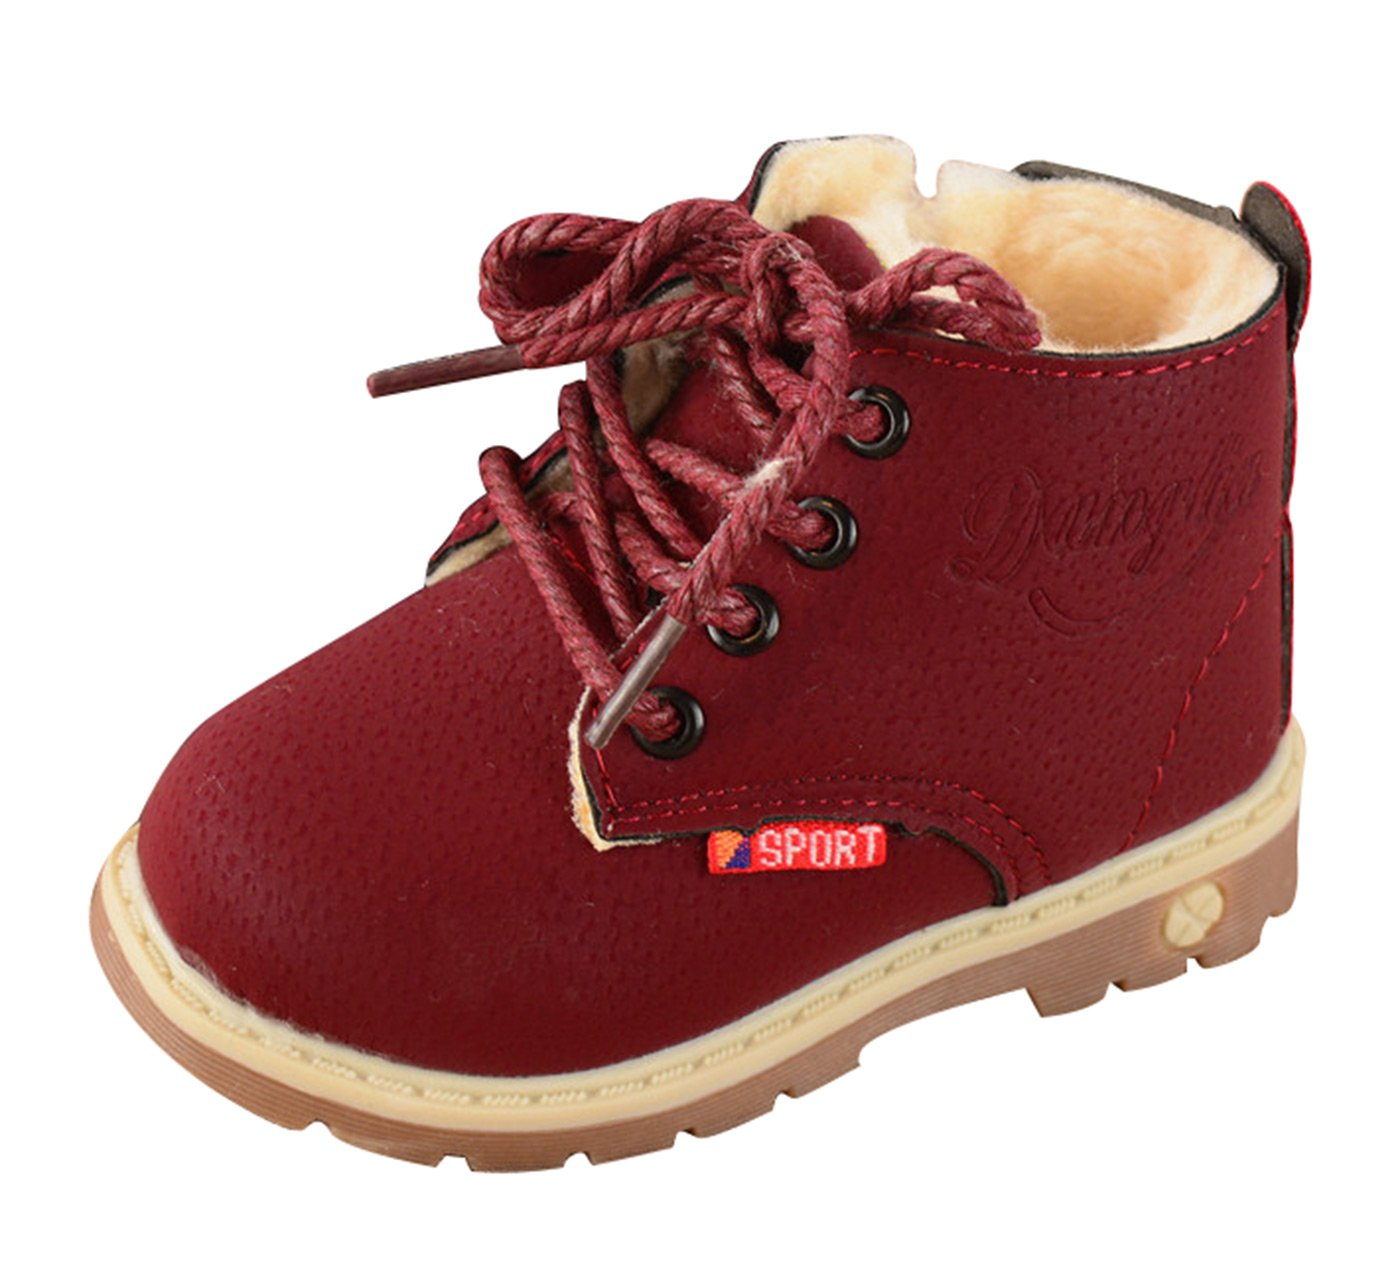 Happy Cherry Men's AutumnWinter Comfort Boots LaceUp Waterproof Ankle Martin Boots Warm Plush Inside with Zipper Wine Red Size 21